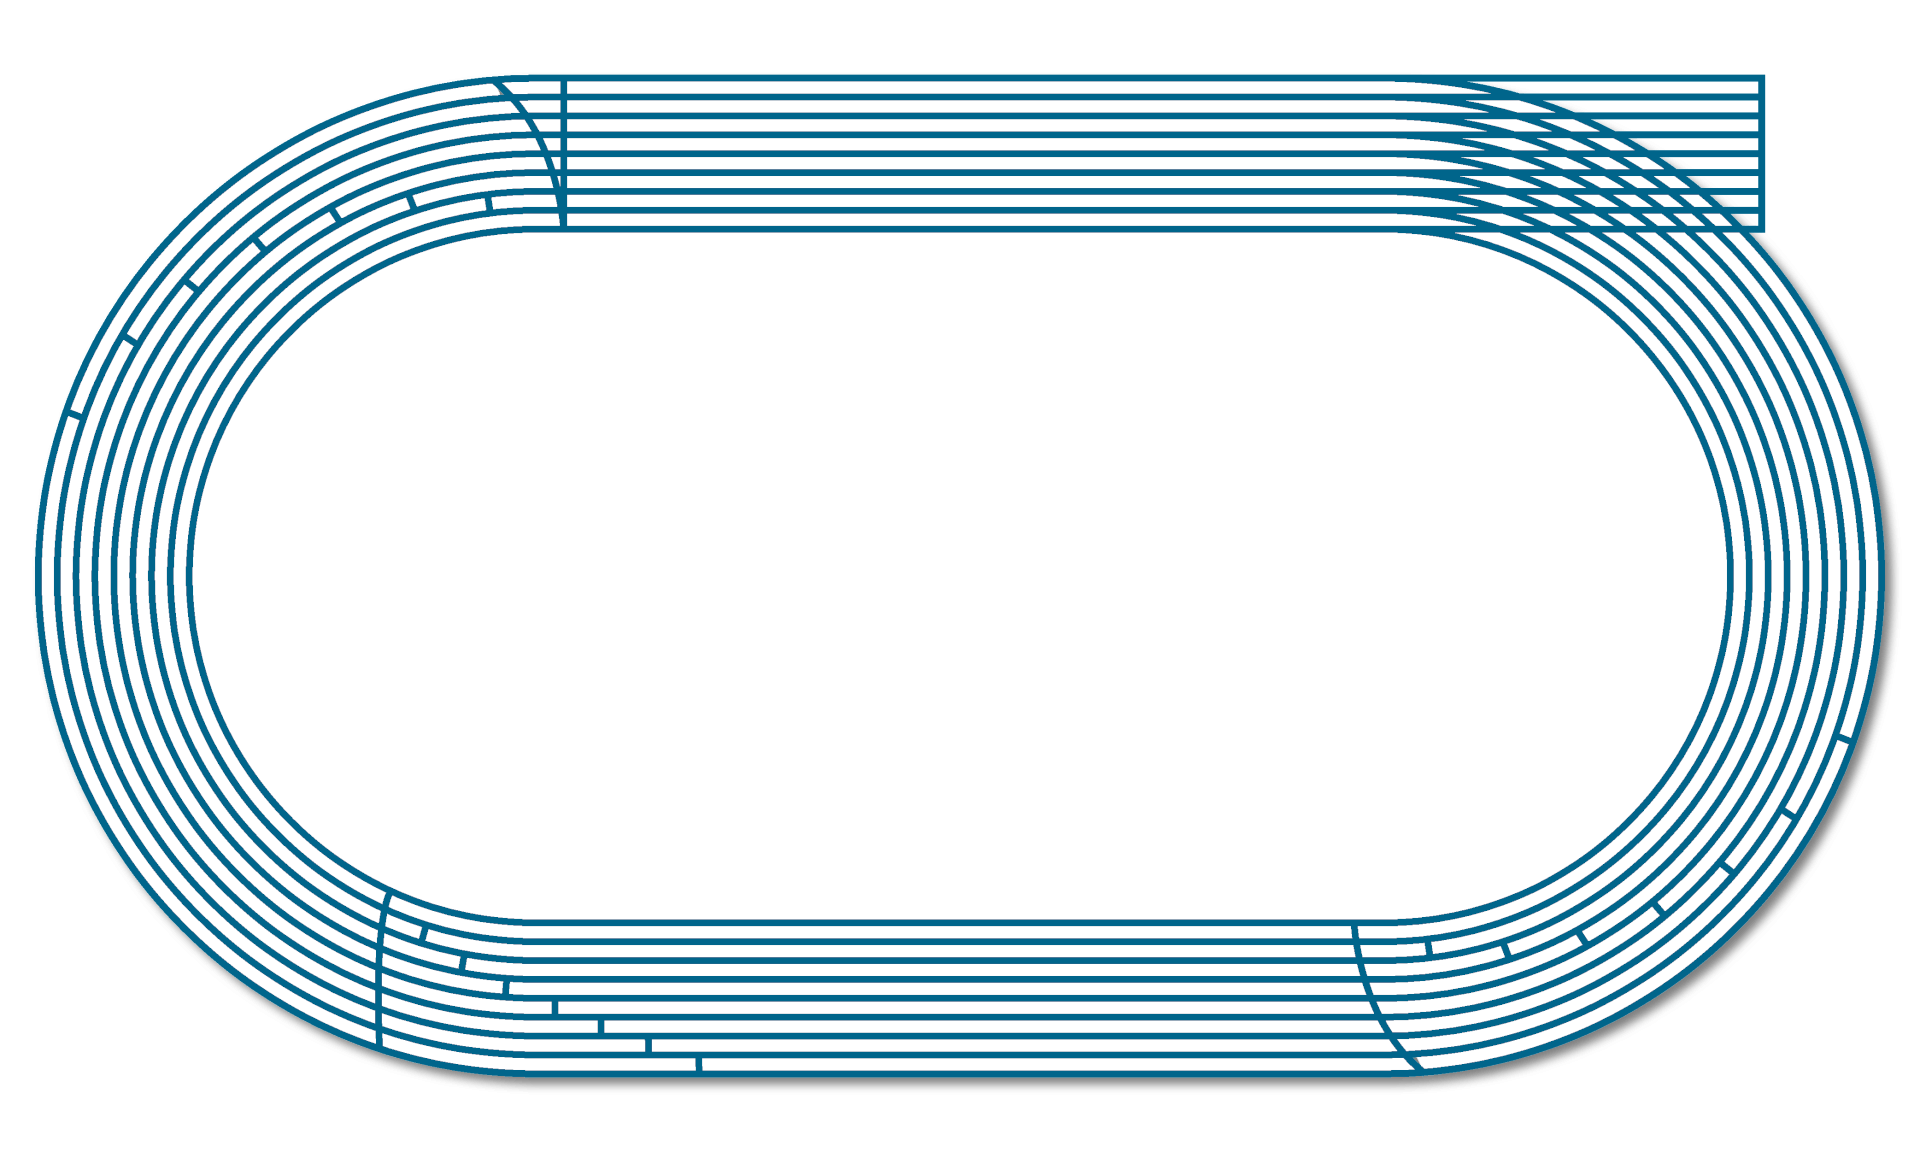 Example of 400 m running track layout with automatic line marking